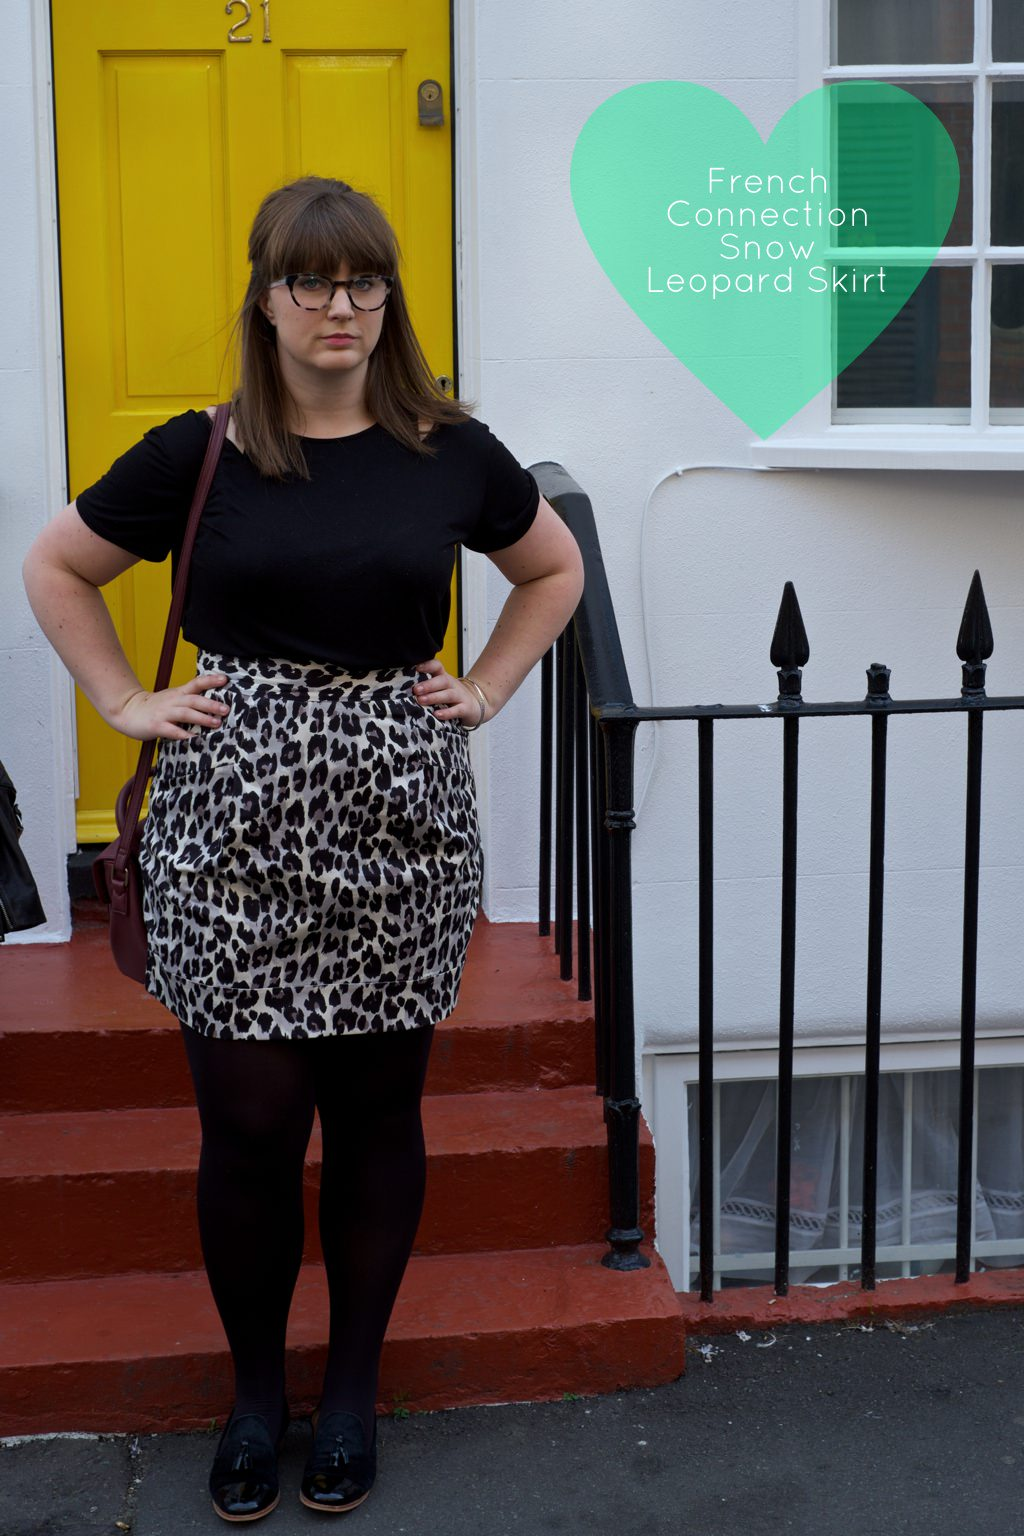 French Connection Leopard Skirt 1 110